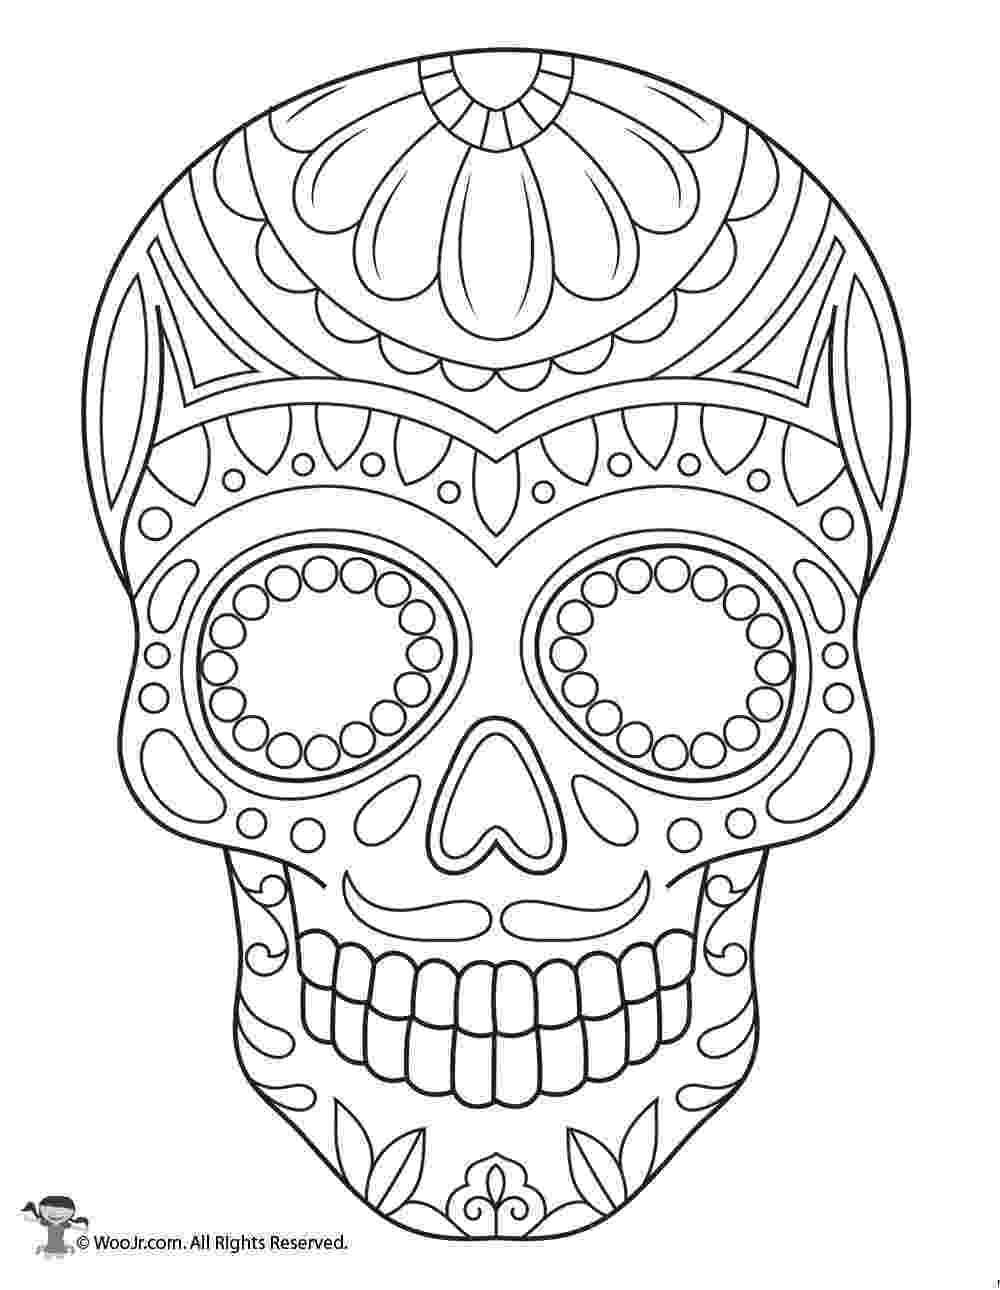 coloring pages for adults day of the dead sugar skull coloring page woo jr kids activities coloring adults of pages day dead the for